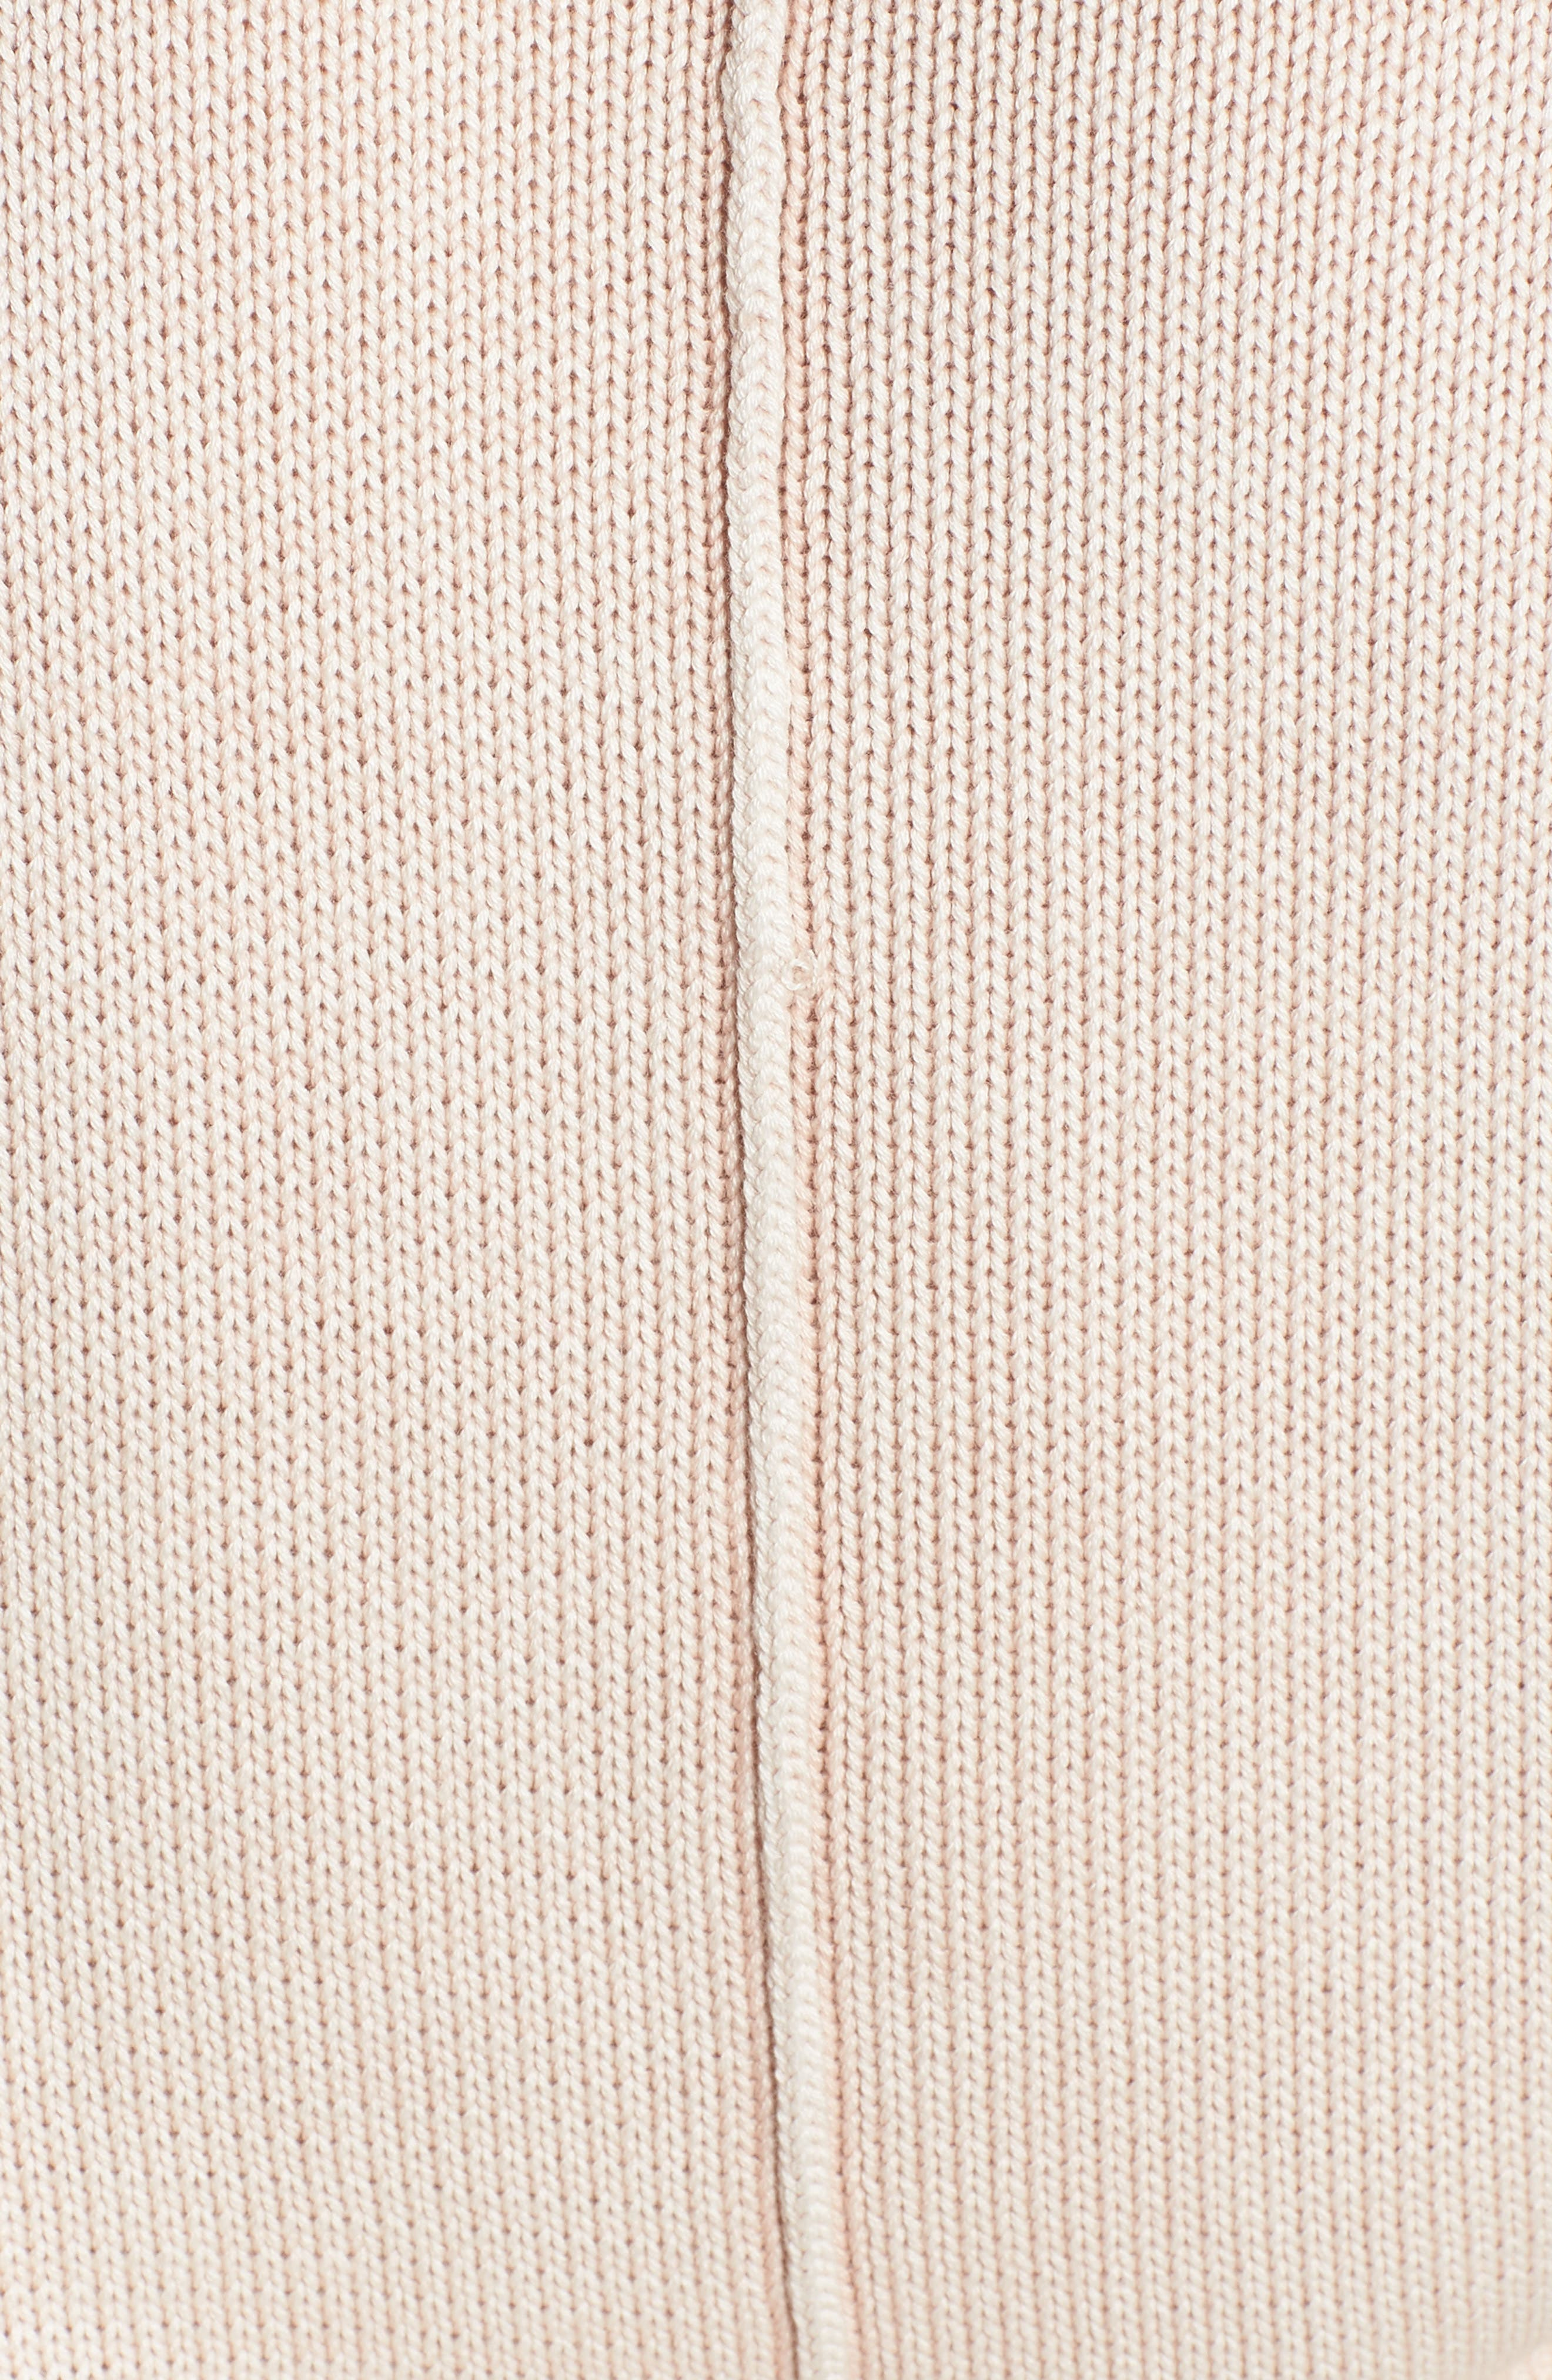 Erin Knit Sweater,                             Alternate thumbnail 5, color,                             Sand Washed Blush